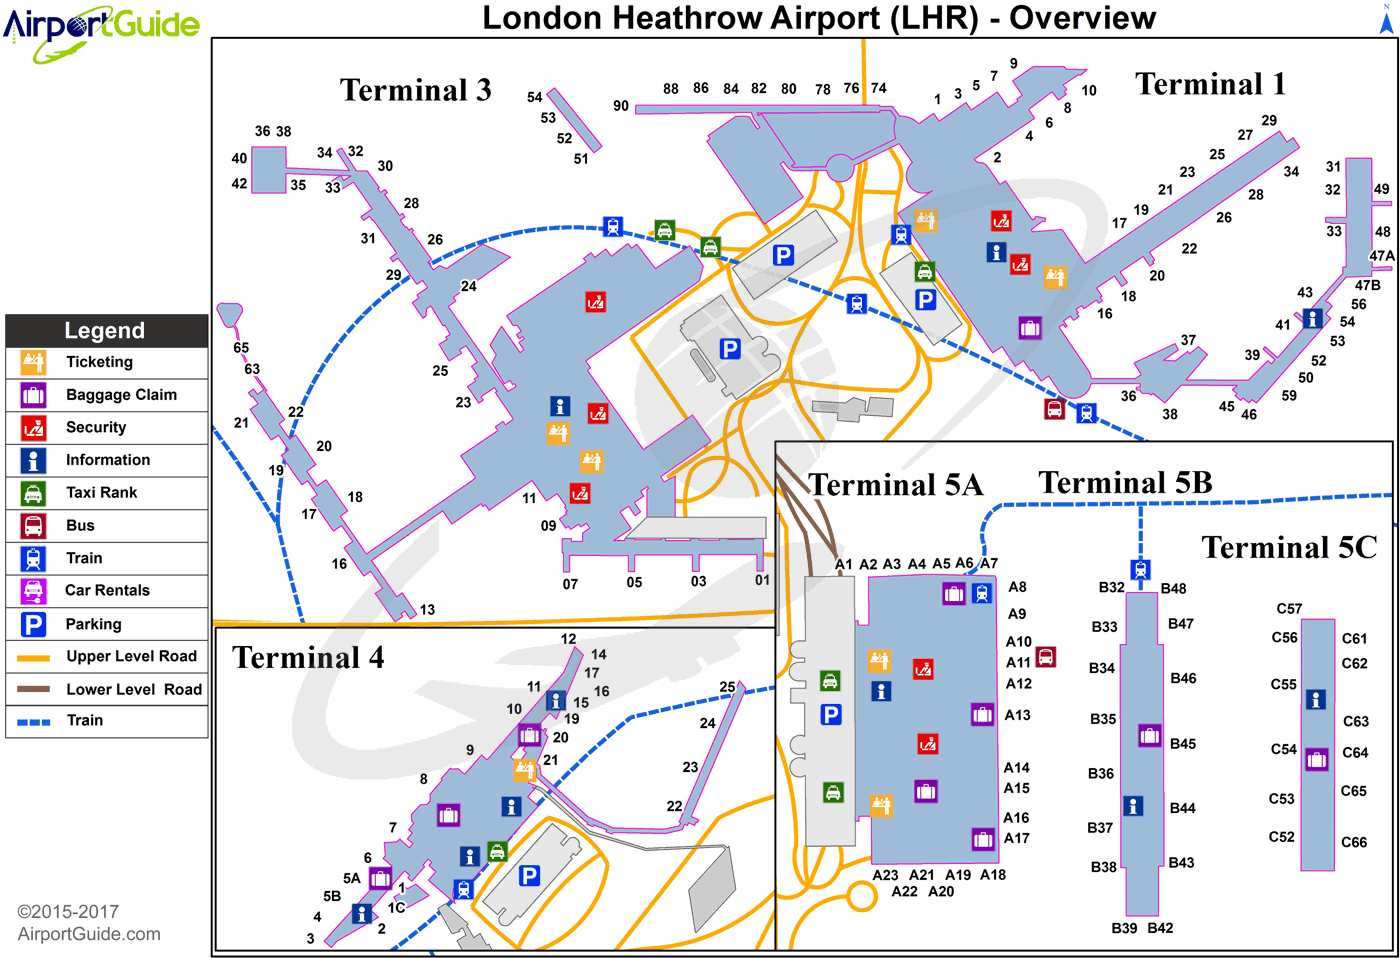 London - Bicester Airfield (LHR) Airport Terminal Map - Overview